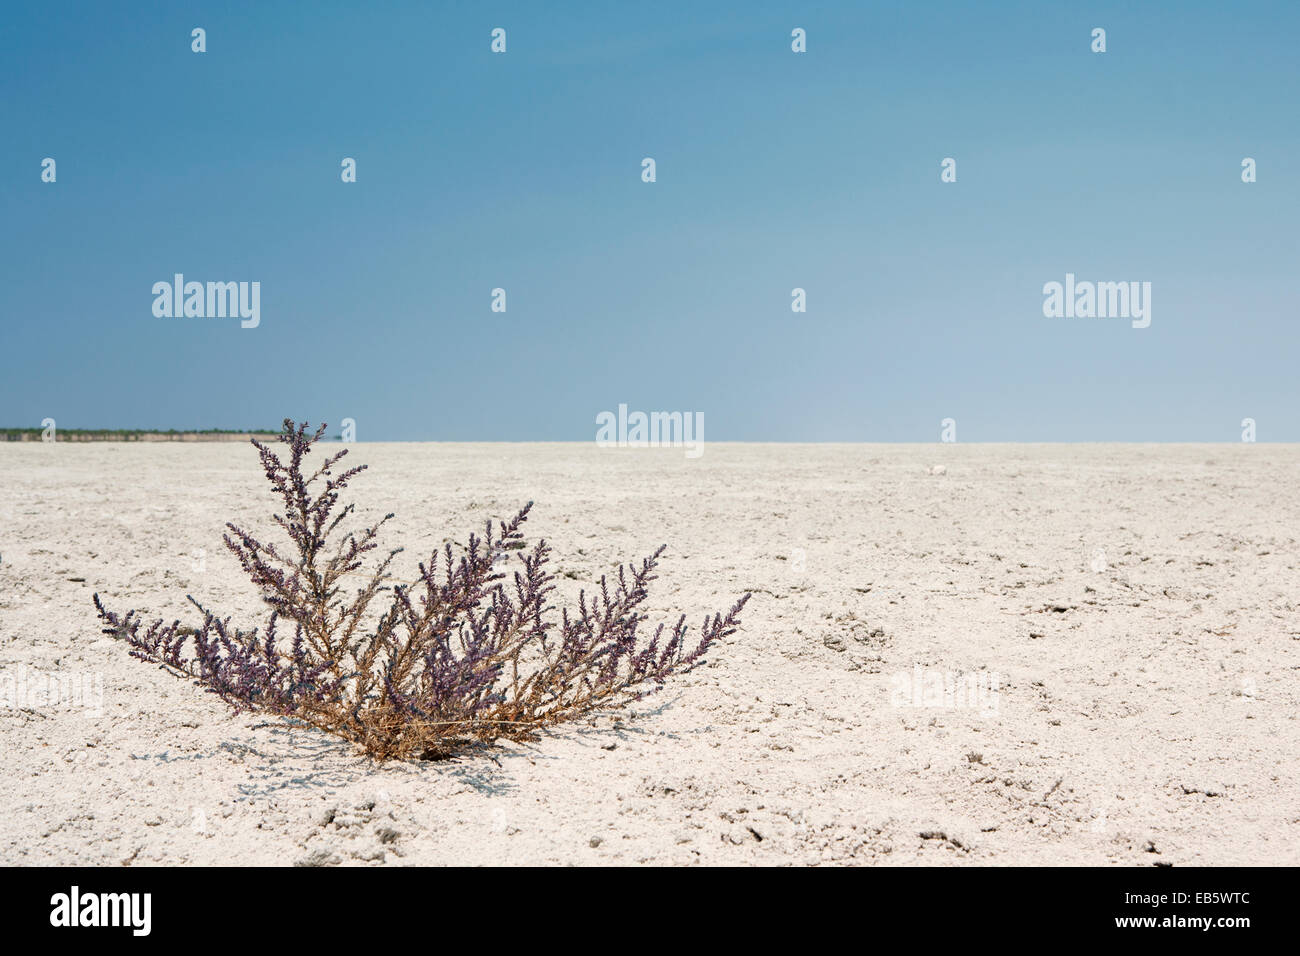 Sparse Vegetation in Etosha Pan - Etosha National Park - Namibia, Africa - Stock Image